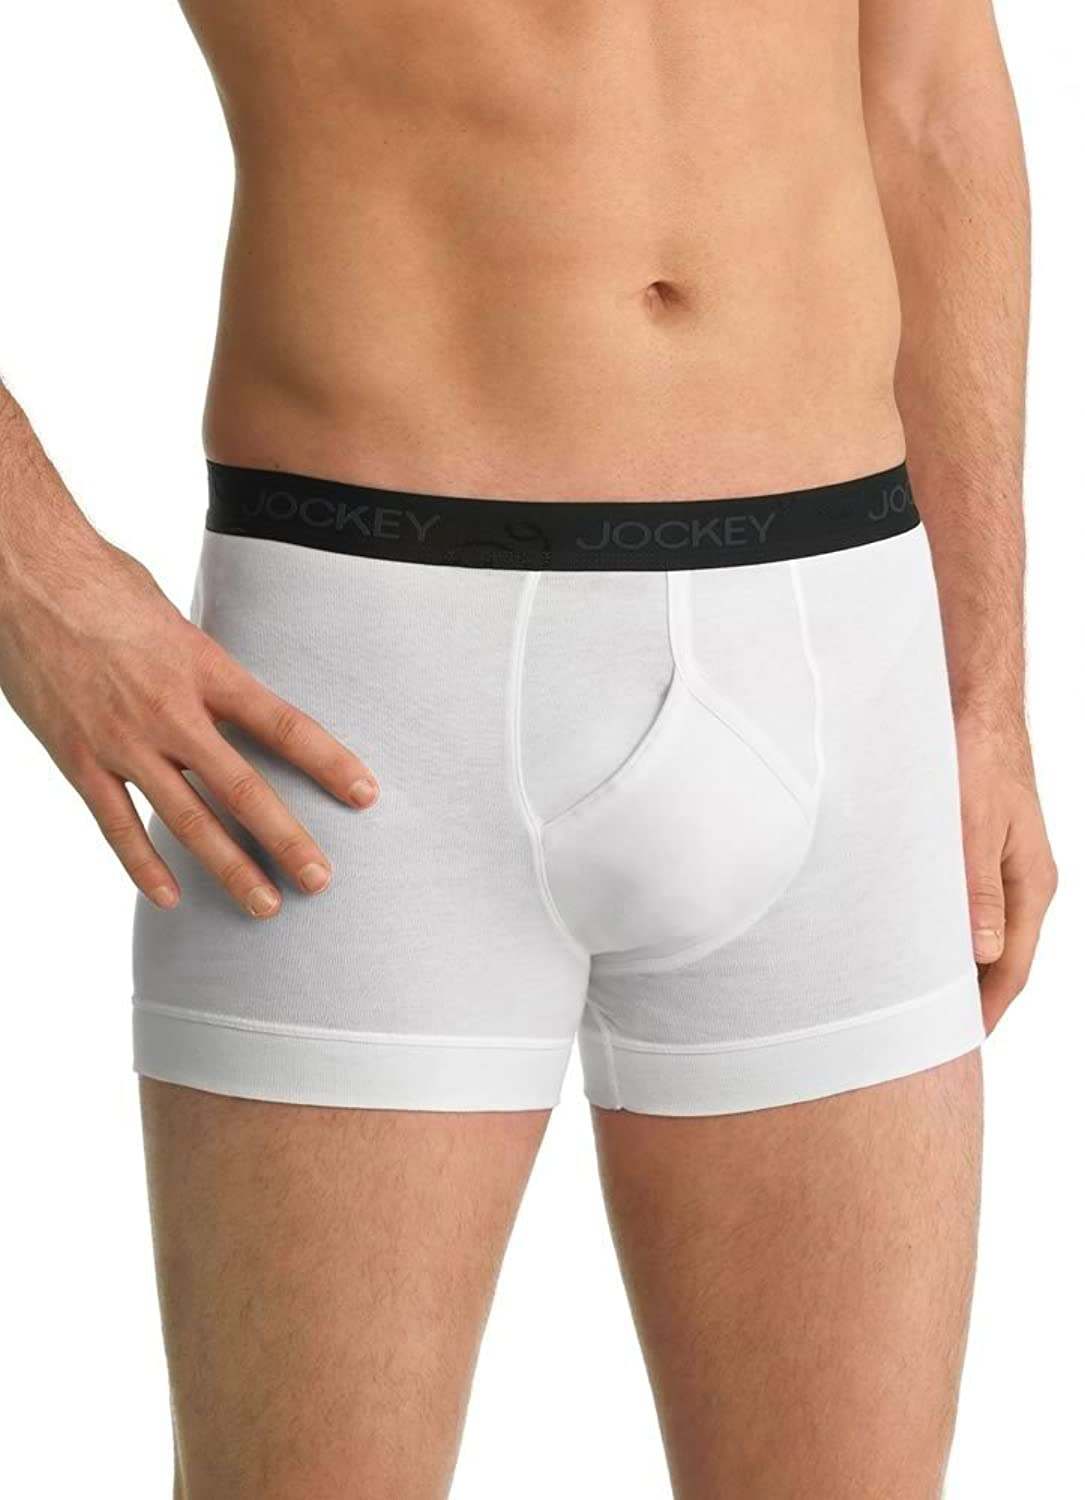 Jockey Men's Underwear Staycool Boxer Brief - 3 Pack at Amazon ...